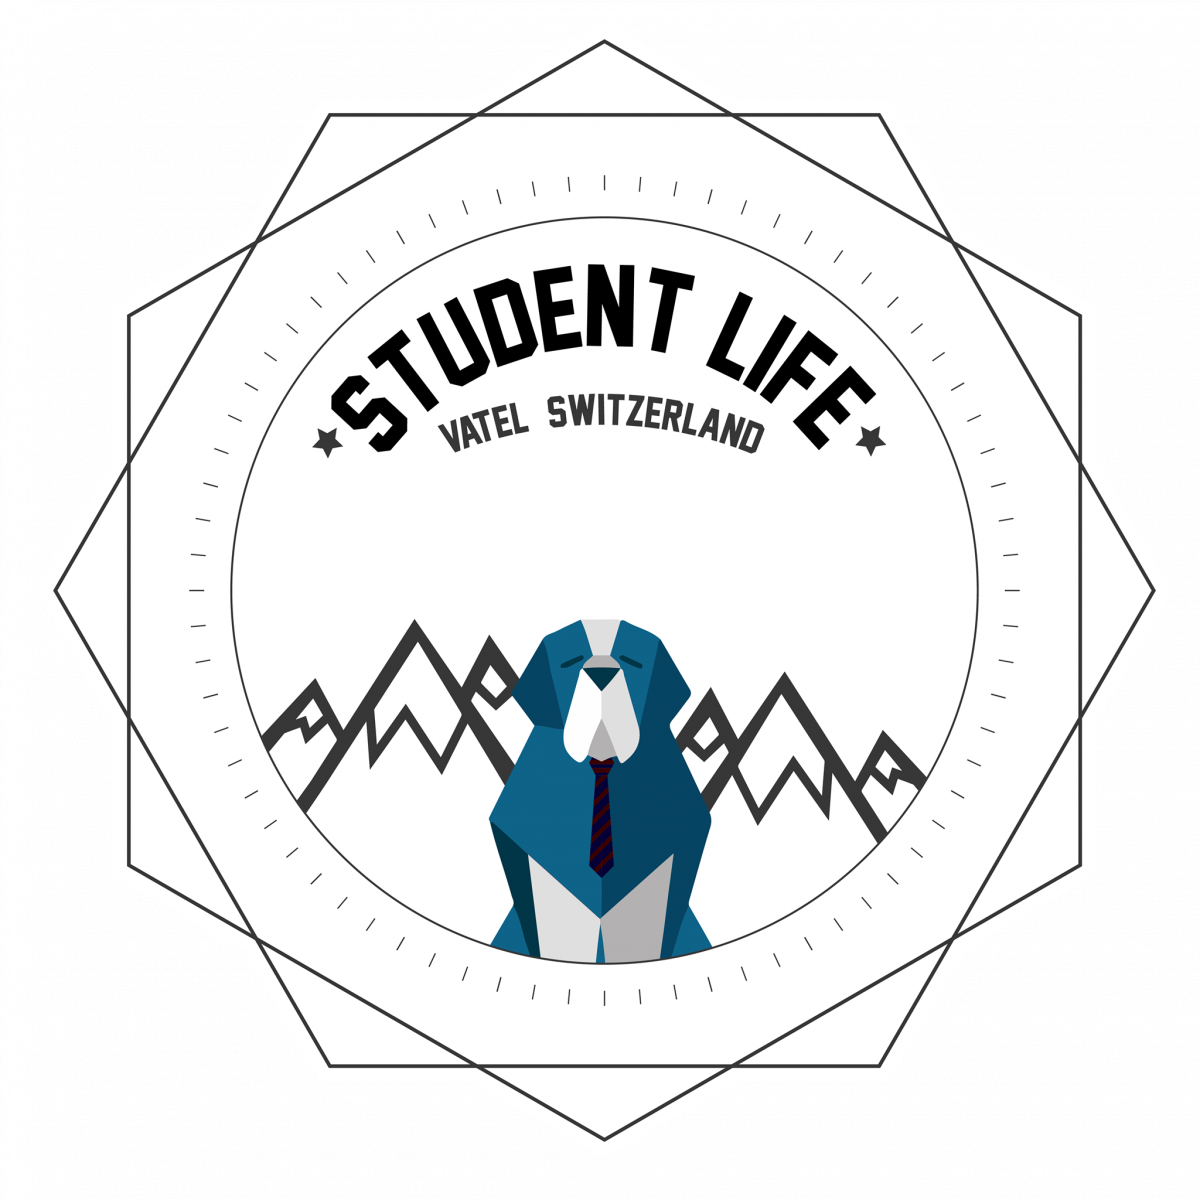 Vatel Switzerland elects a new Student Life President